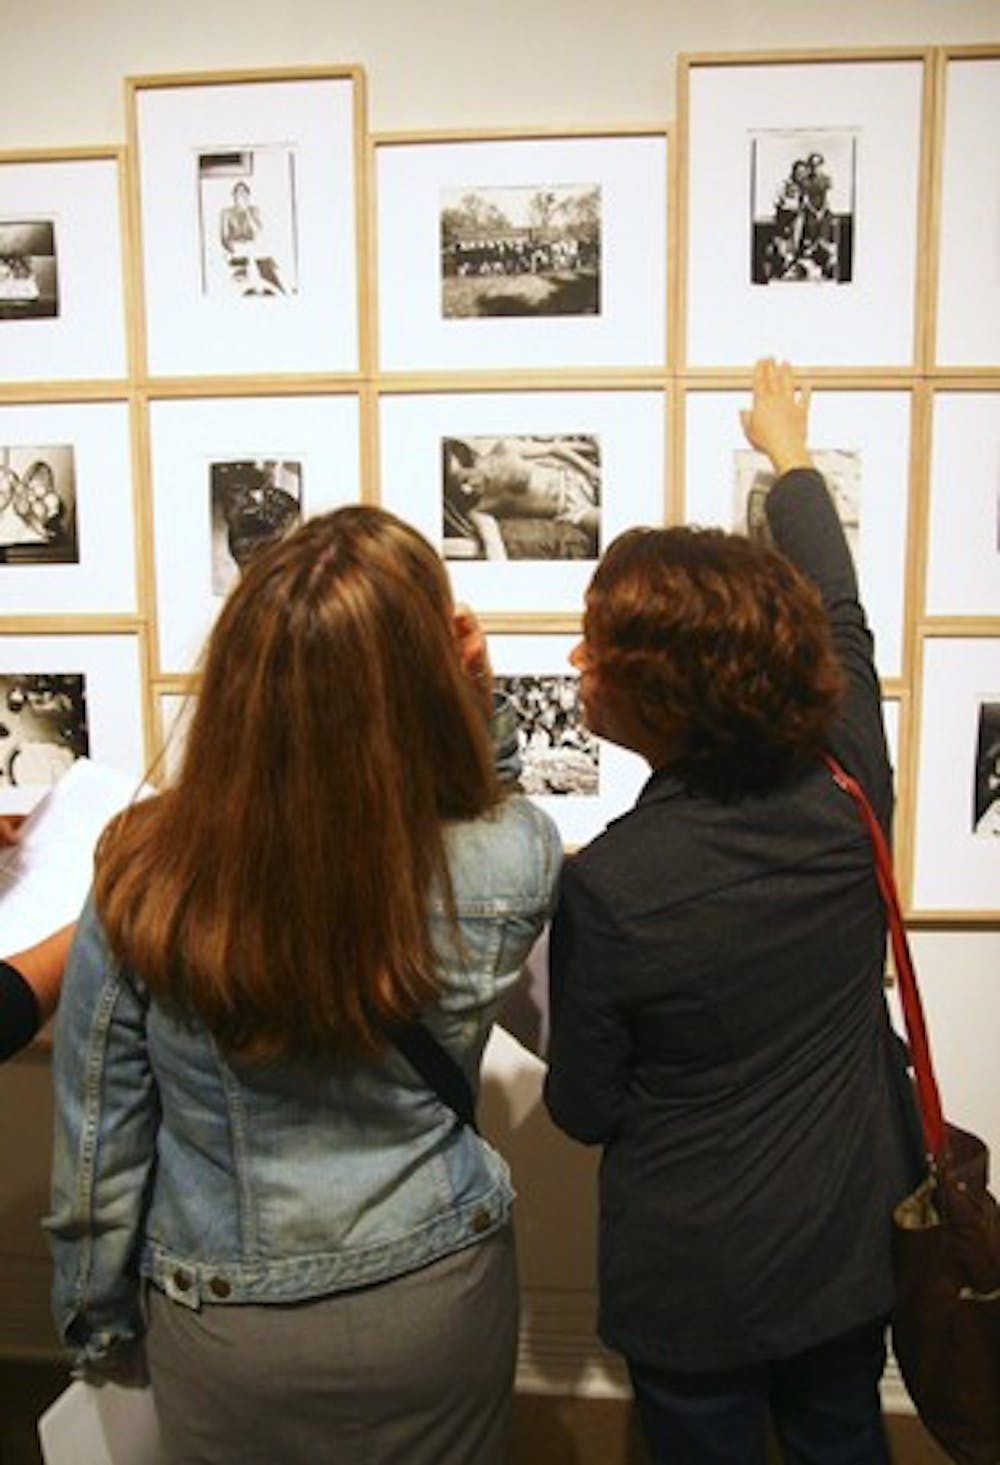 Ackland Art Museum capitalizes on Warhol